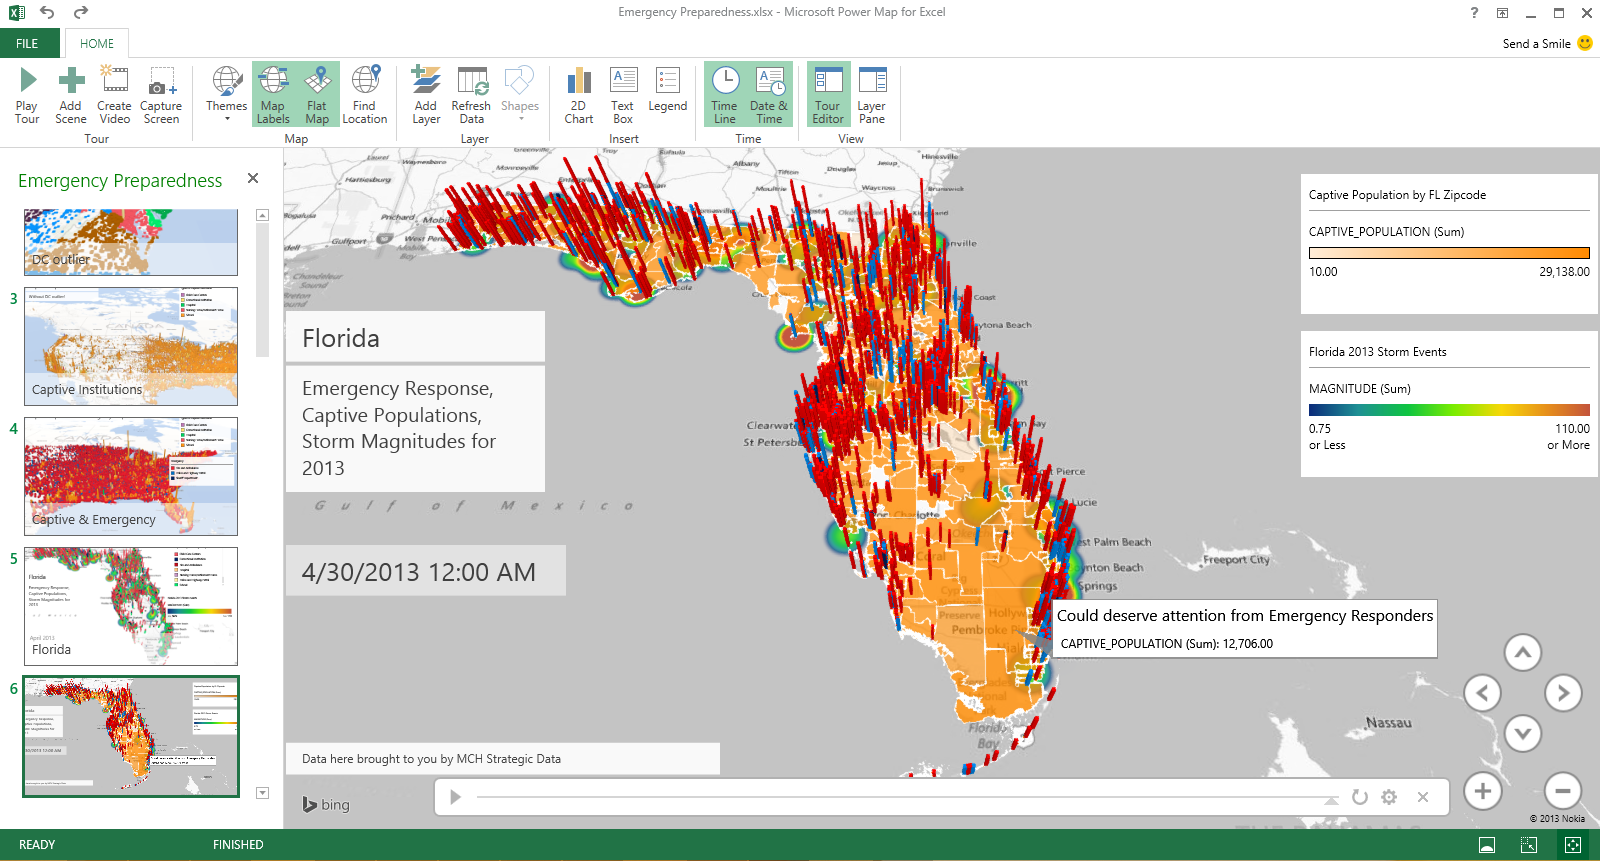 Ediblewildsus  Outstanding Power Map For Excel Now Generally Available Automatically Updated  With Glamorous Power Map For Excel Now Generally Available Automatically Updated For Office  With Divine Advantages Of Excel Also Sum Excel Function In Addition Excel Formula To Highlight Duplicates And Bill Of Lading Excel As Well As Averages On Excel Additionally Excel If  Conditions From Powerbimicrosoftcom With Ediblewildsus  Glamorous Power Map For Excel Now Generally Available Automatically Updated  With Divine Power Map For Excel Now Generally Available Automatically Updated For Office  And Outstanding Advantages Of Excel Also Sum Excel Function In Addition Excel Formula To Highlight Duplicates From Powerbimicrosoftcom